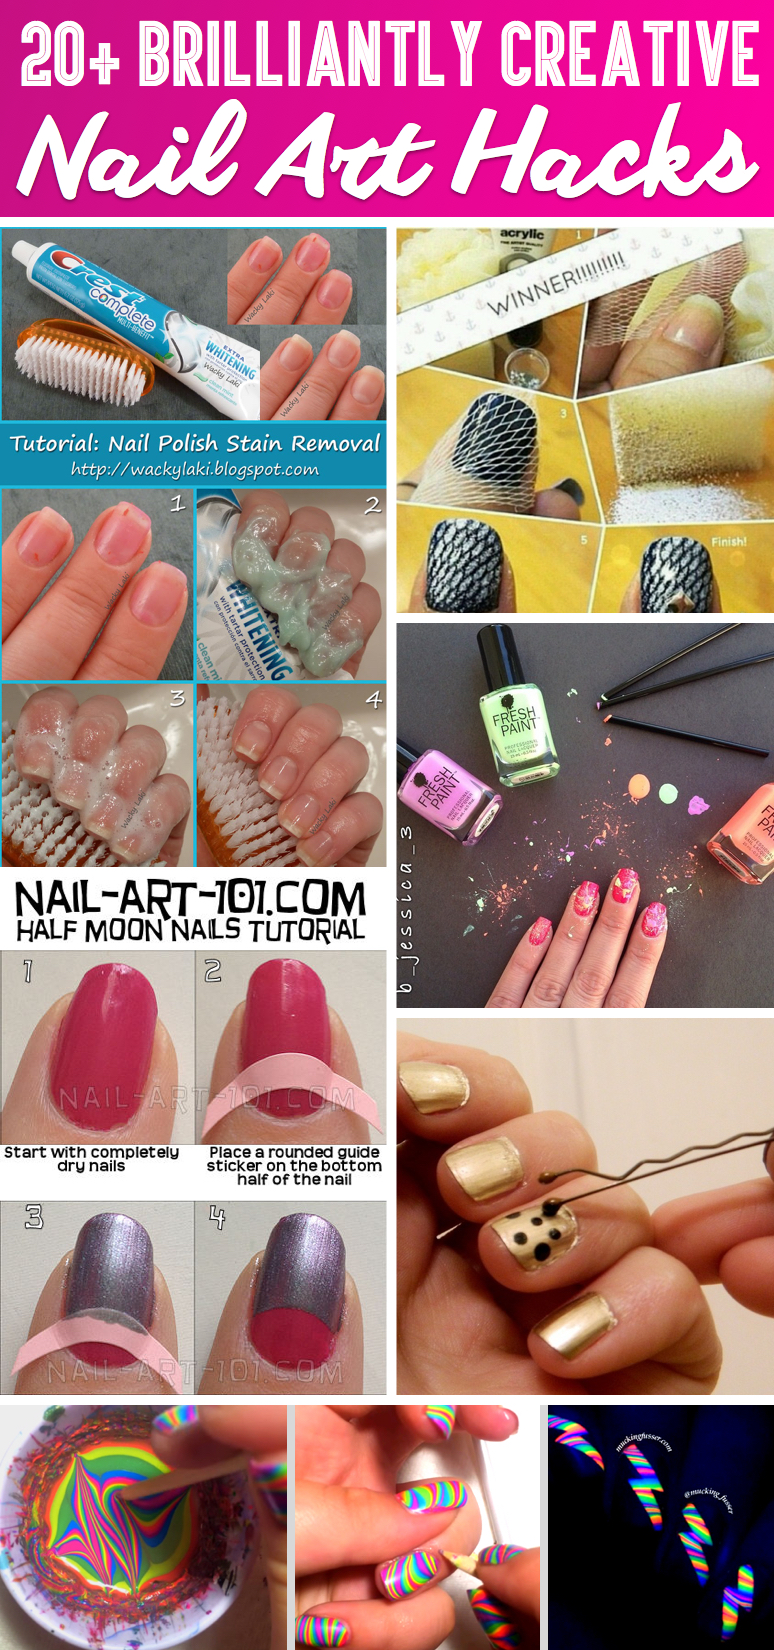 20+ Brilliantly Creative Nail Art Hacks That Are Pure Genius – Cute ...